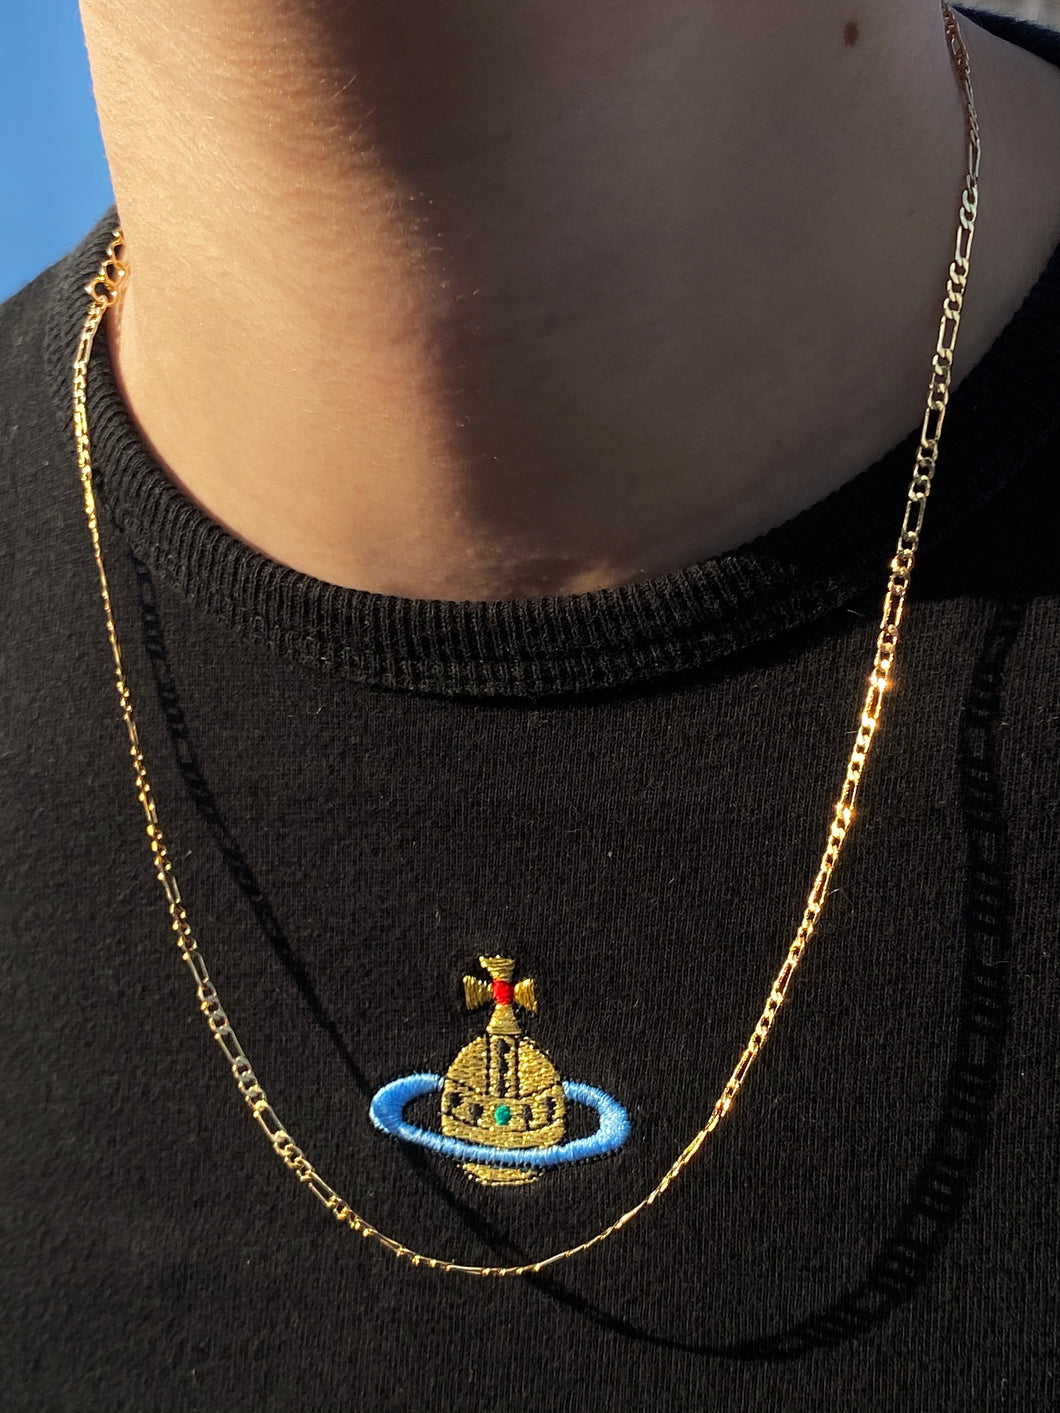 The Gold Classic Chain